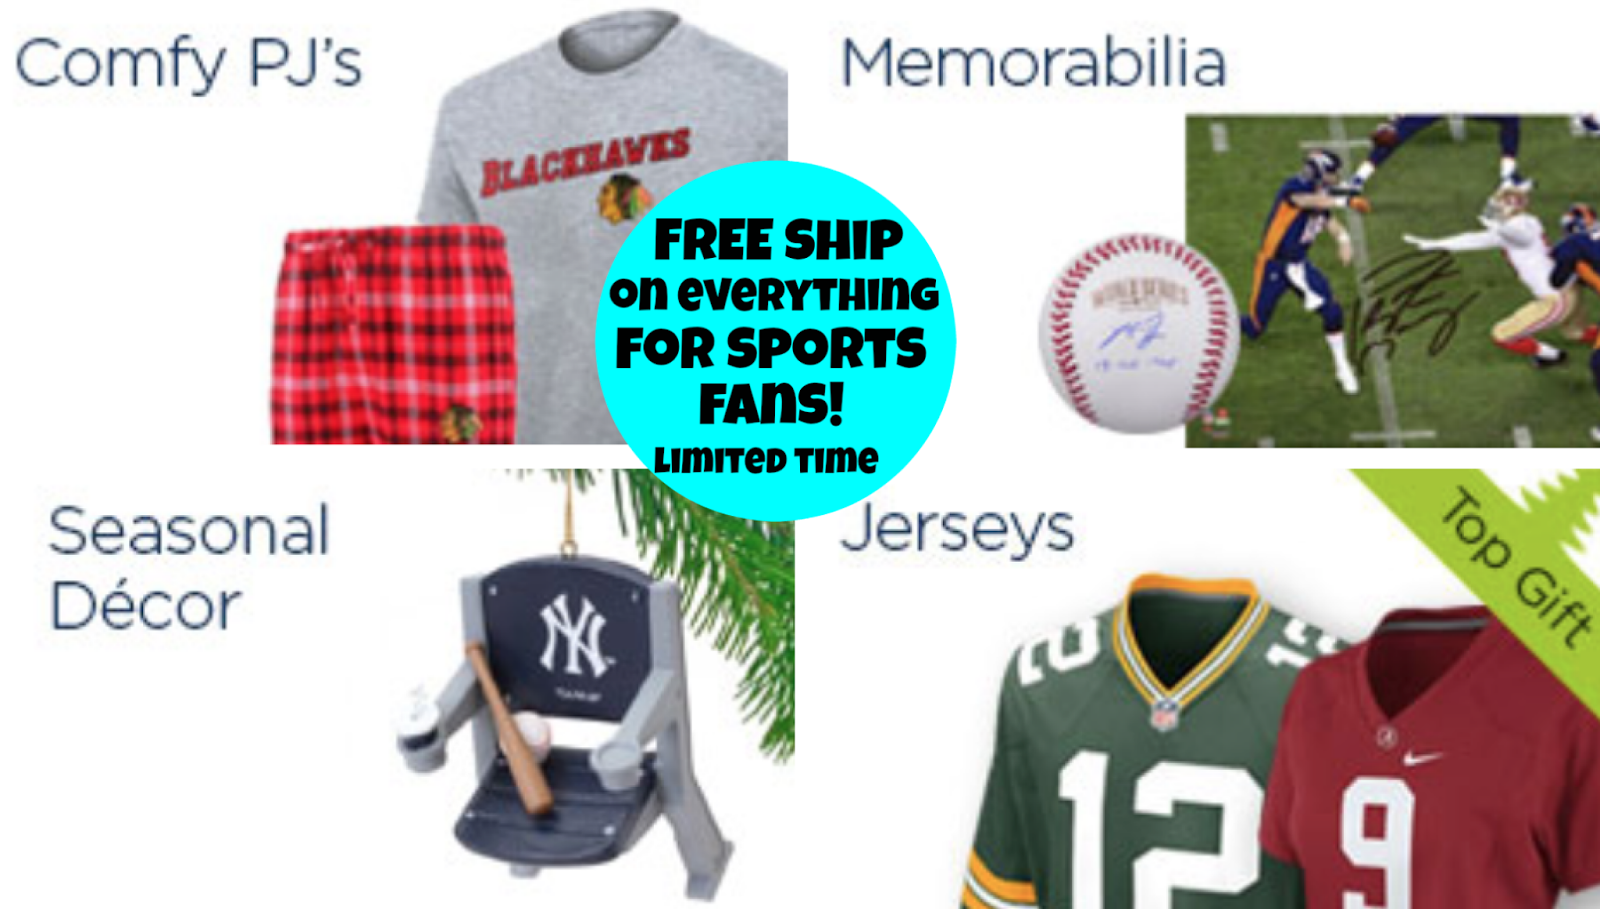 http://www.thebinderladies.com/2014/12/fanatics-free-shipping-awesome-deals-on.html